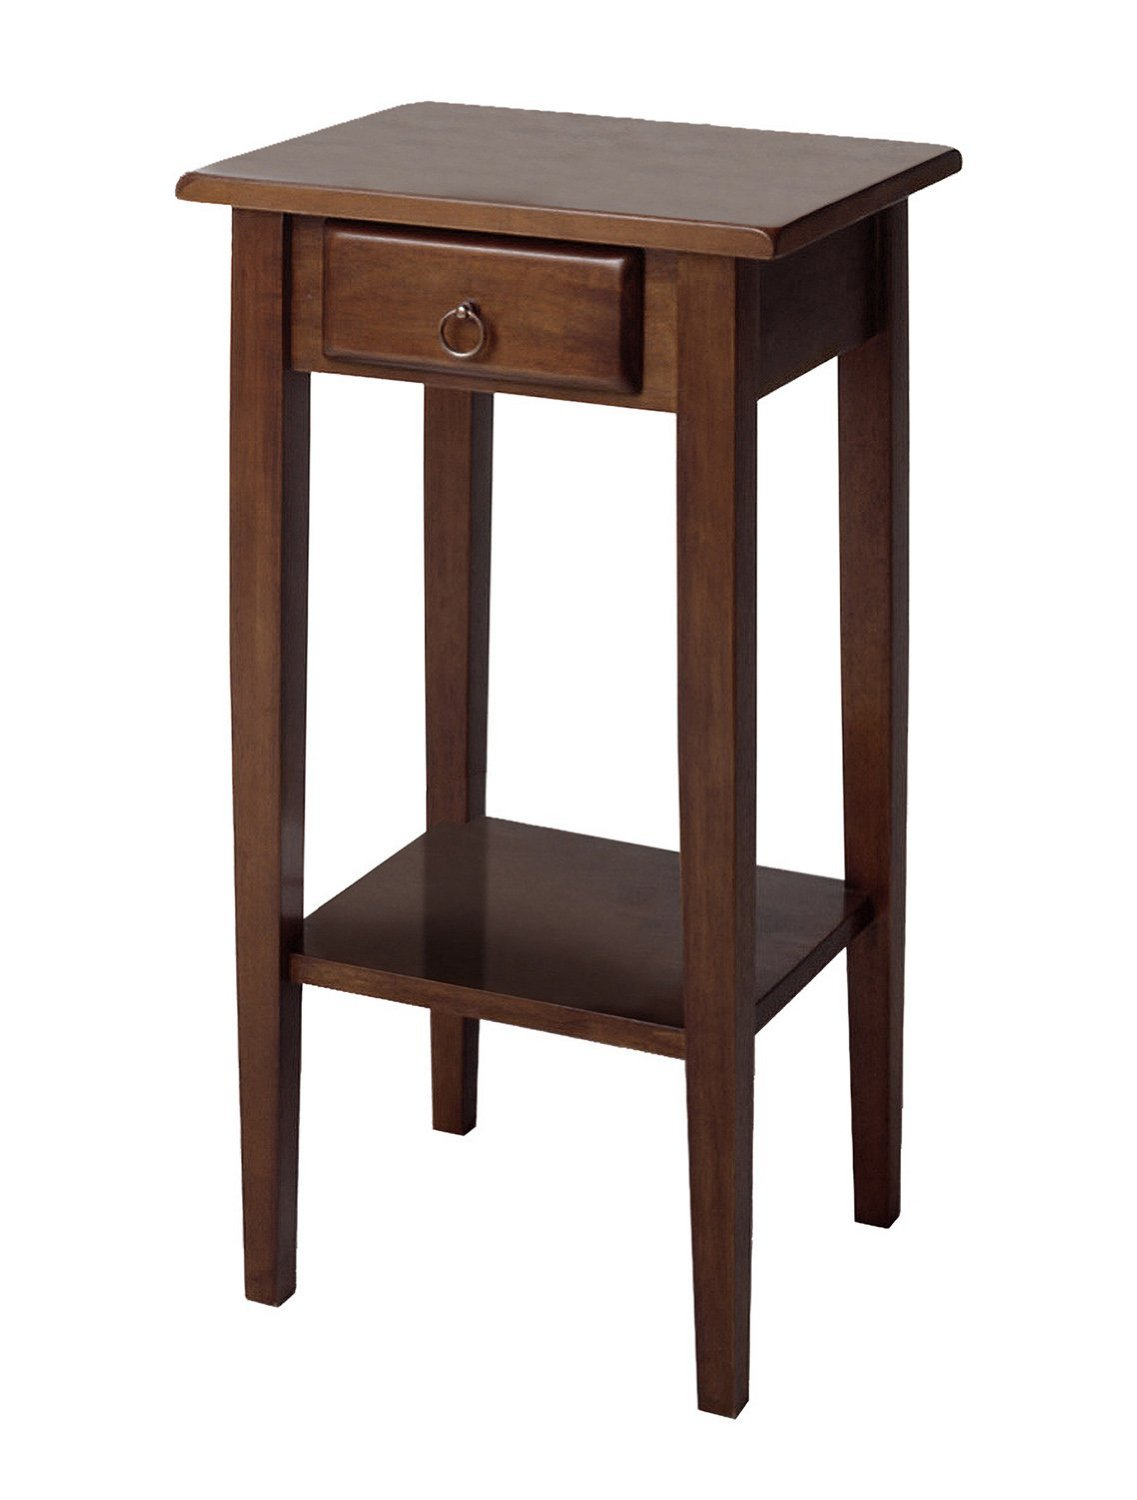 wonderful very small nightstand awesome bedroom decorating ideas intended for narrow accent table pier one living room candle centerpieces dining tables outdoor sideboard pottery